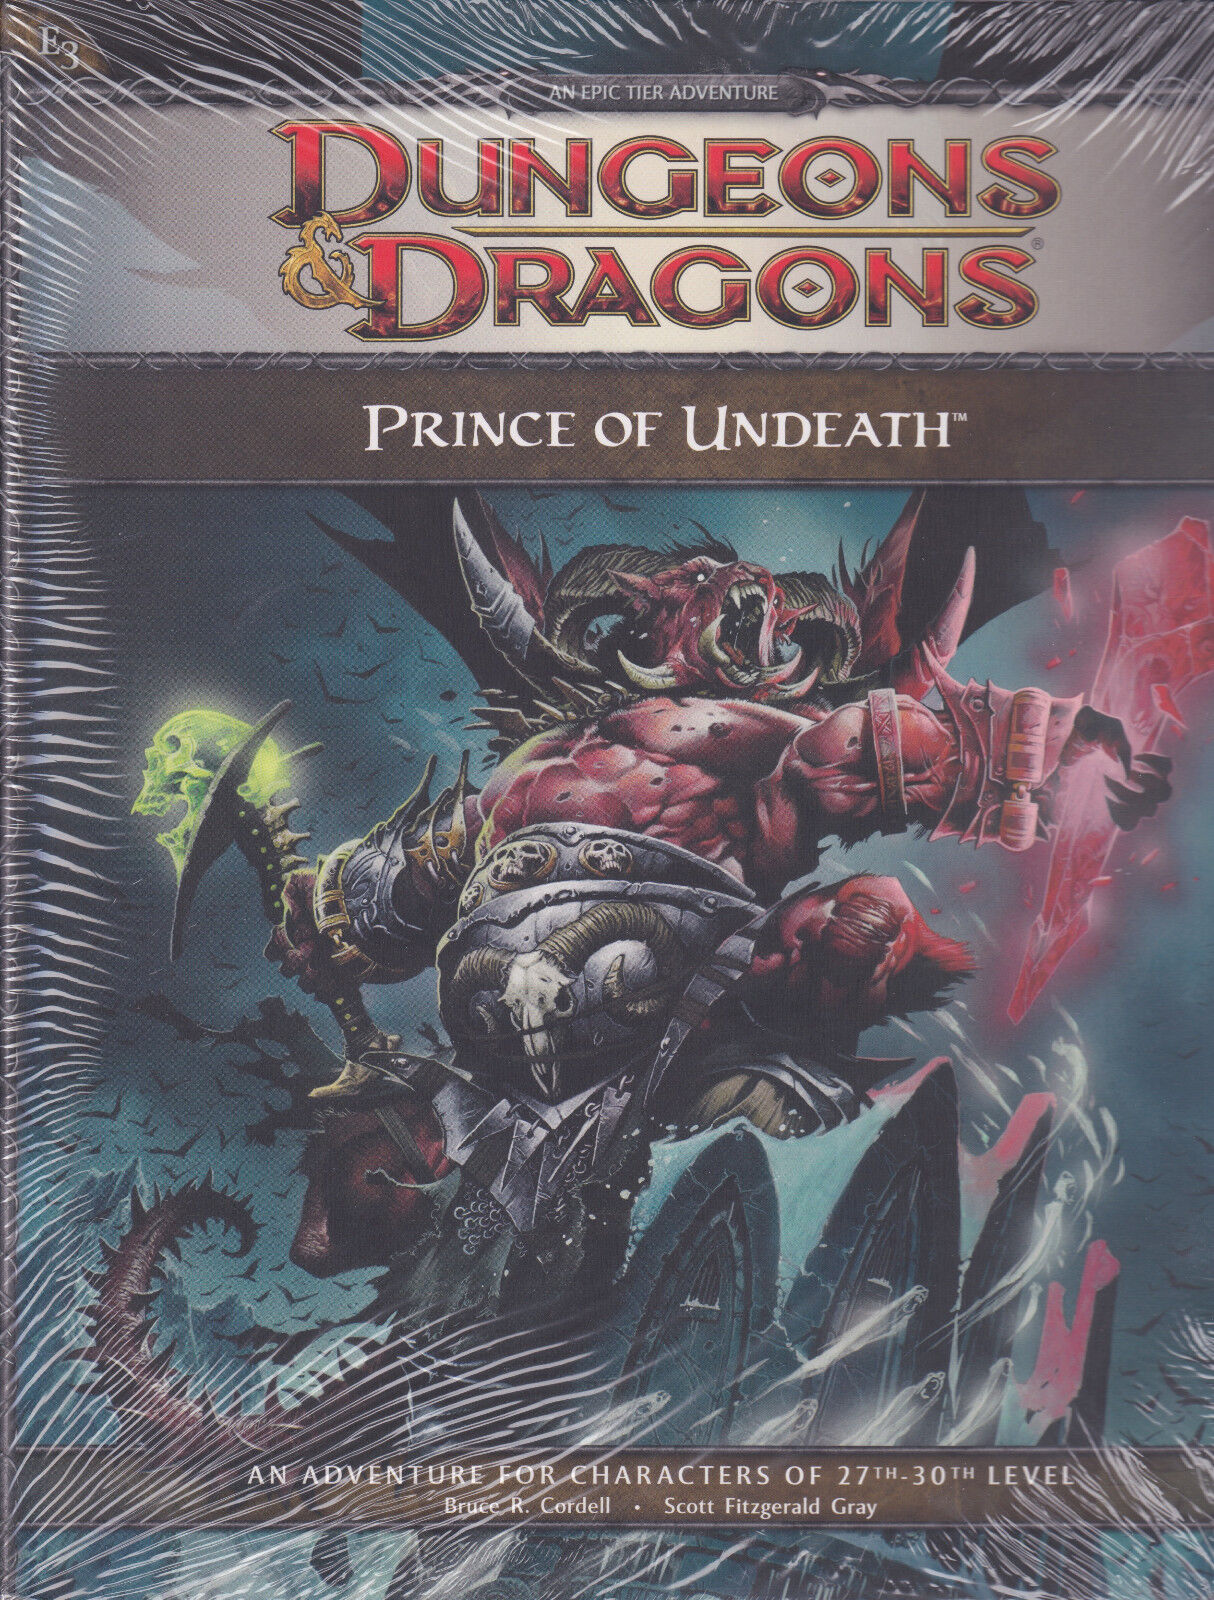 Dungeons & Dragons D&D Prince of Undeath an Epic Tier Adventure 27-30th Level